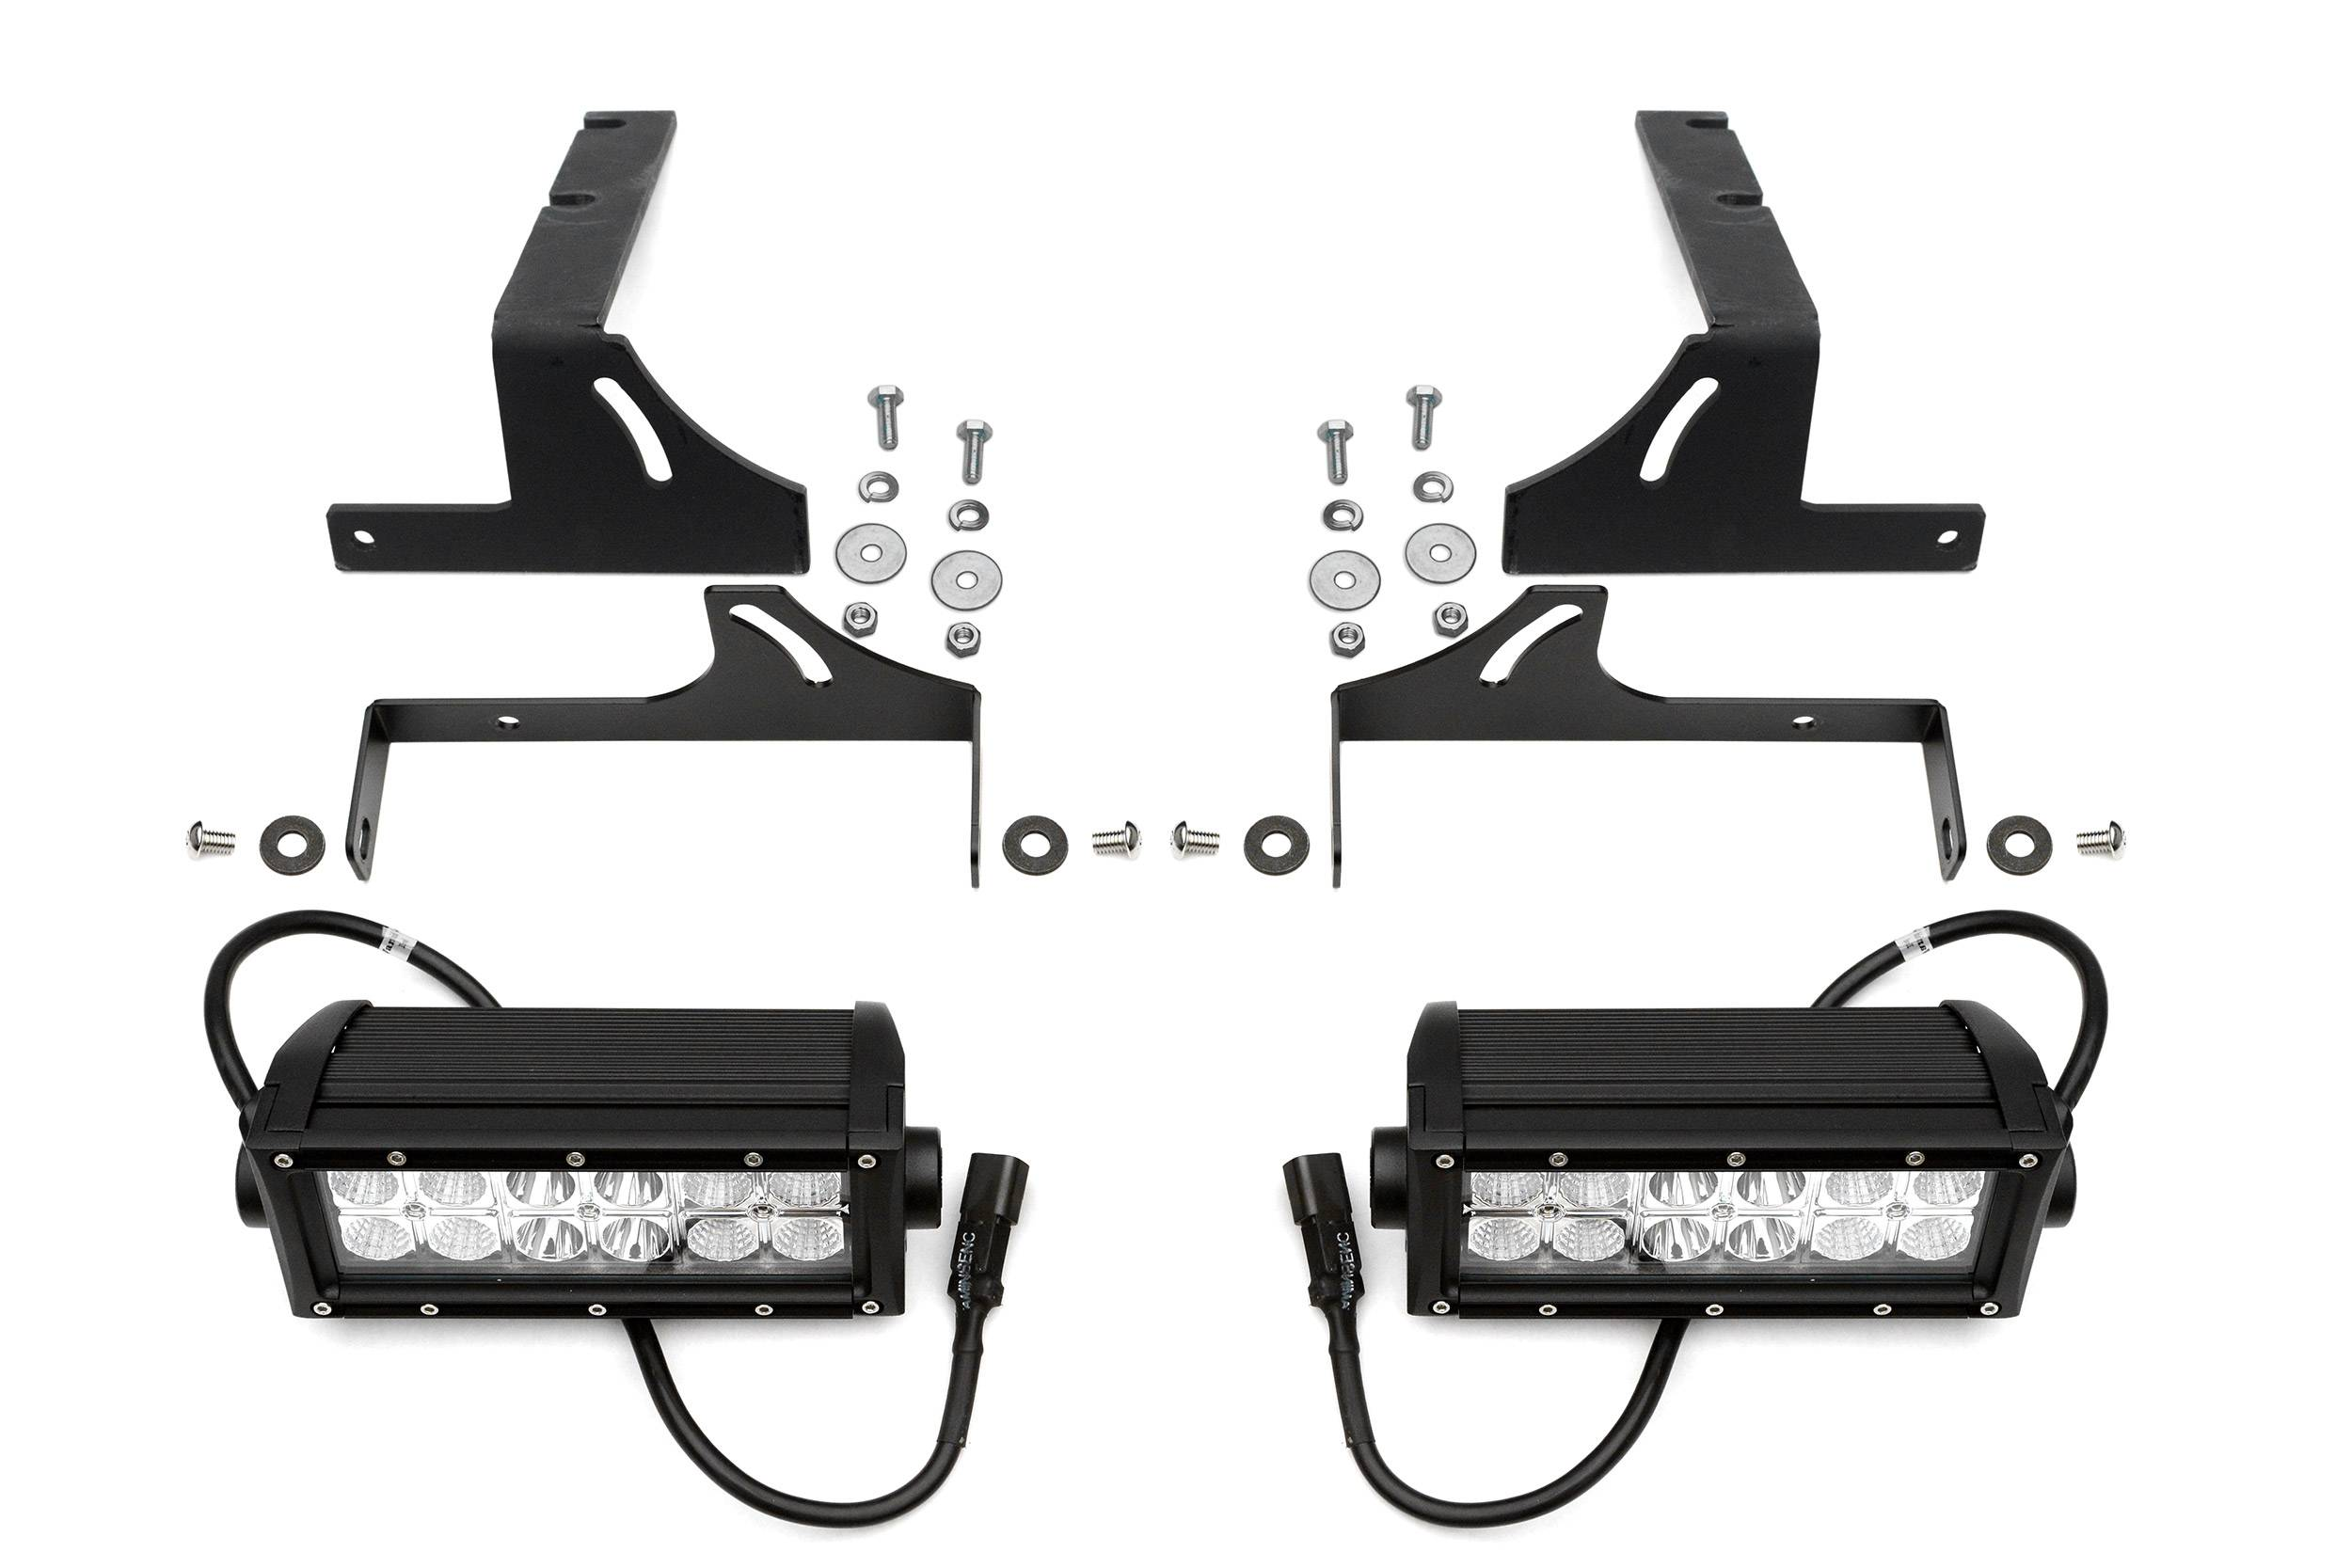 ZROADZ                                             - Silverado, Sierra Rear Bumper LED Kit  Incl. (2) 6 Inch LED Straight Double Row Light Bars - PN #Z382051-KIT